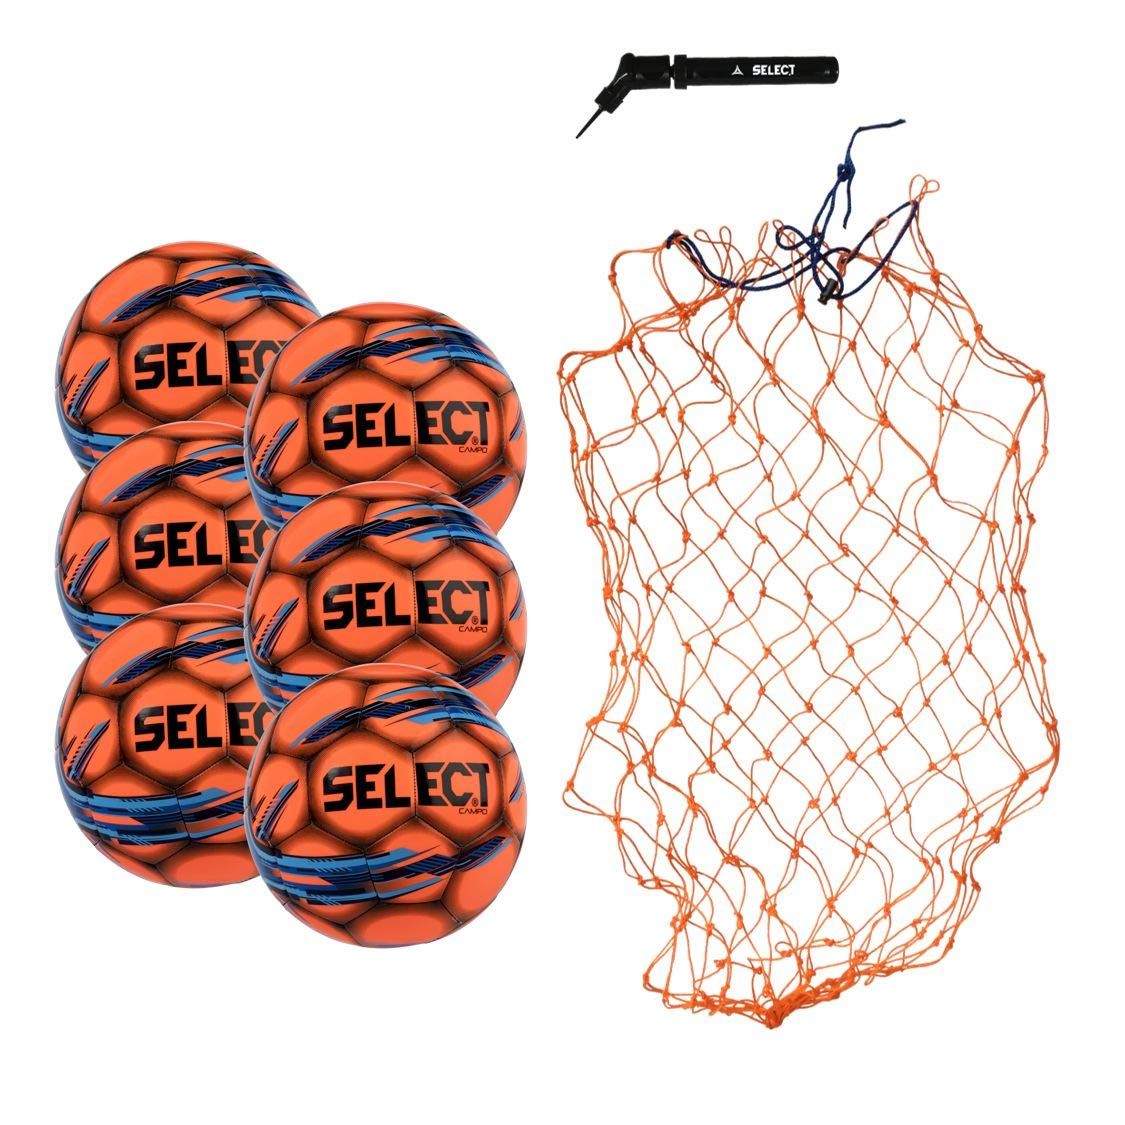 Select Campo Soccer Ball Package - Pack of 6 Soccer Balls with Ball Net and Hand Pump, Orange, 3